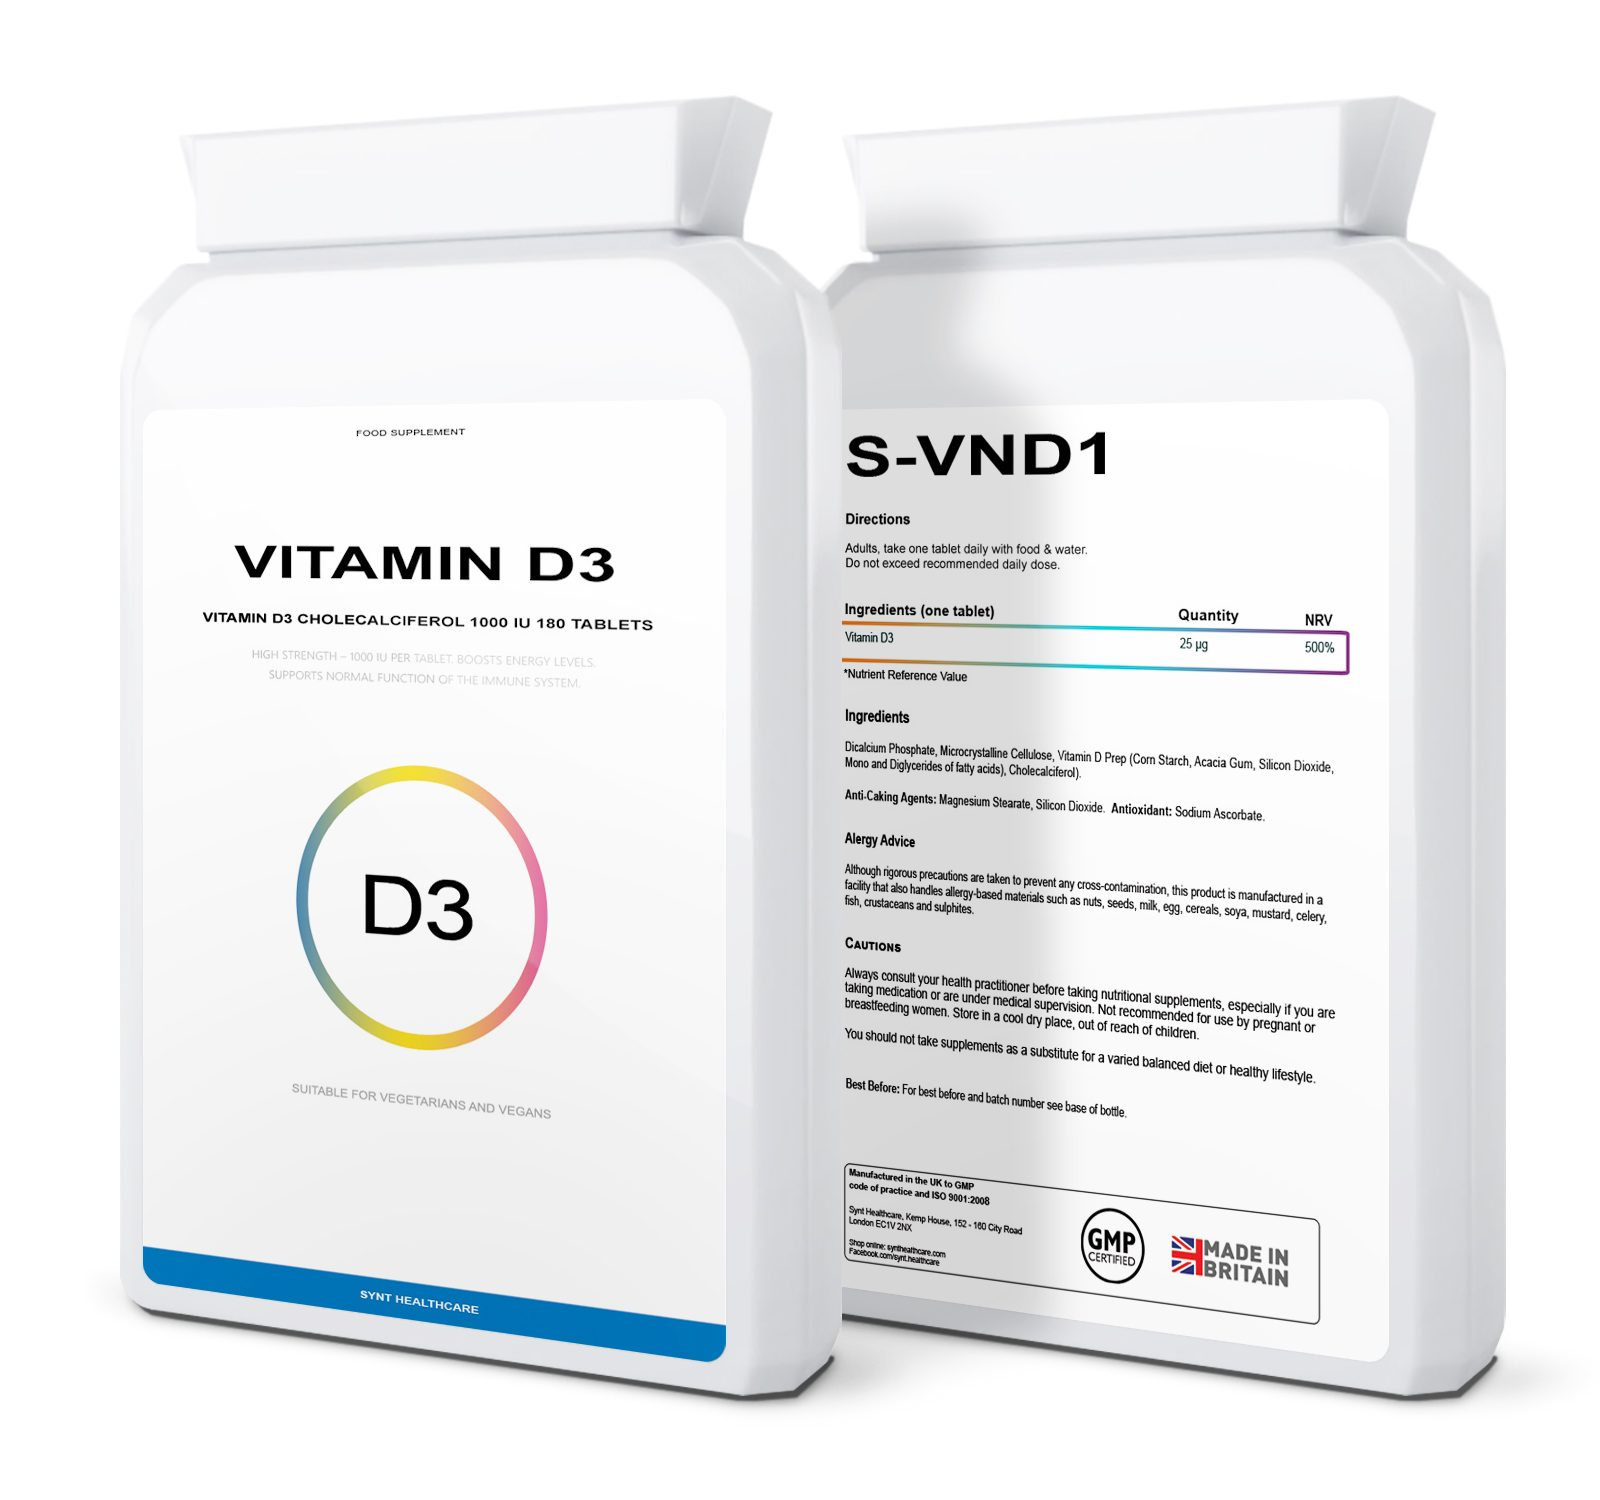 Vitamin D3 Cholecalciferol 180 tablets